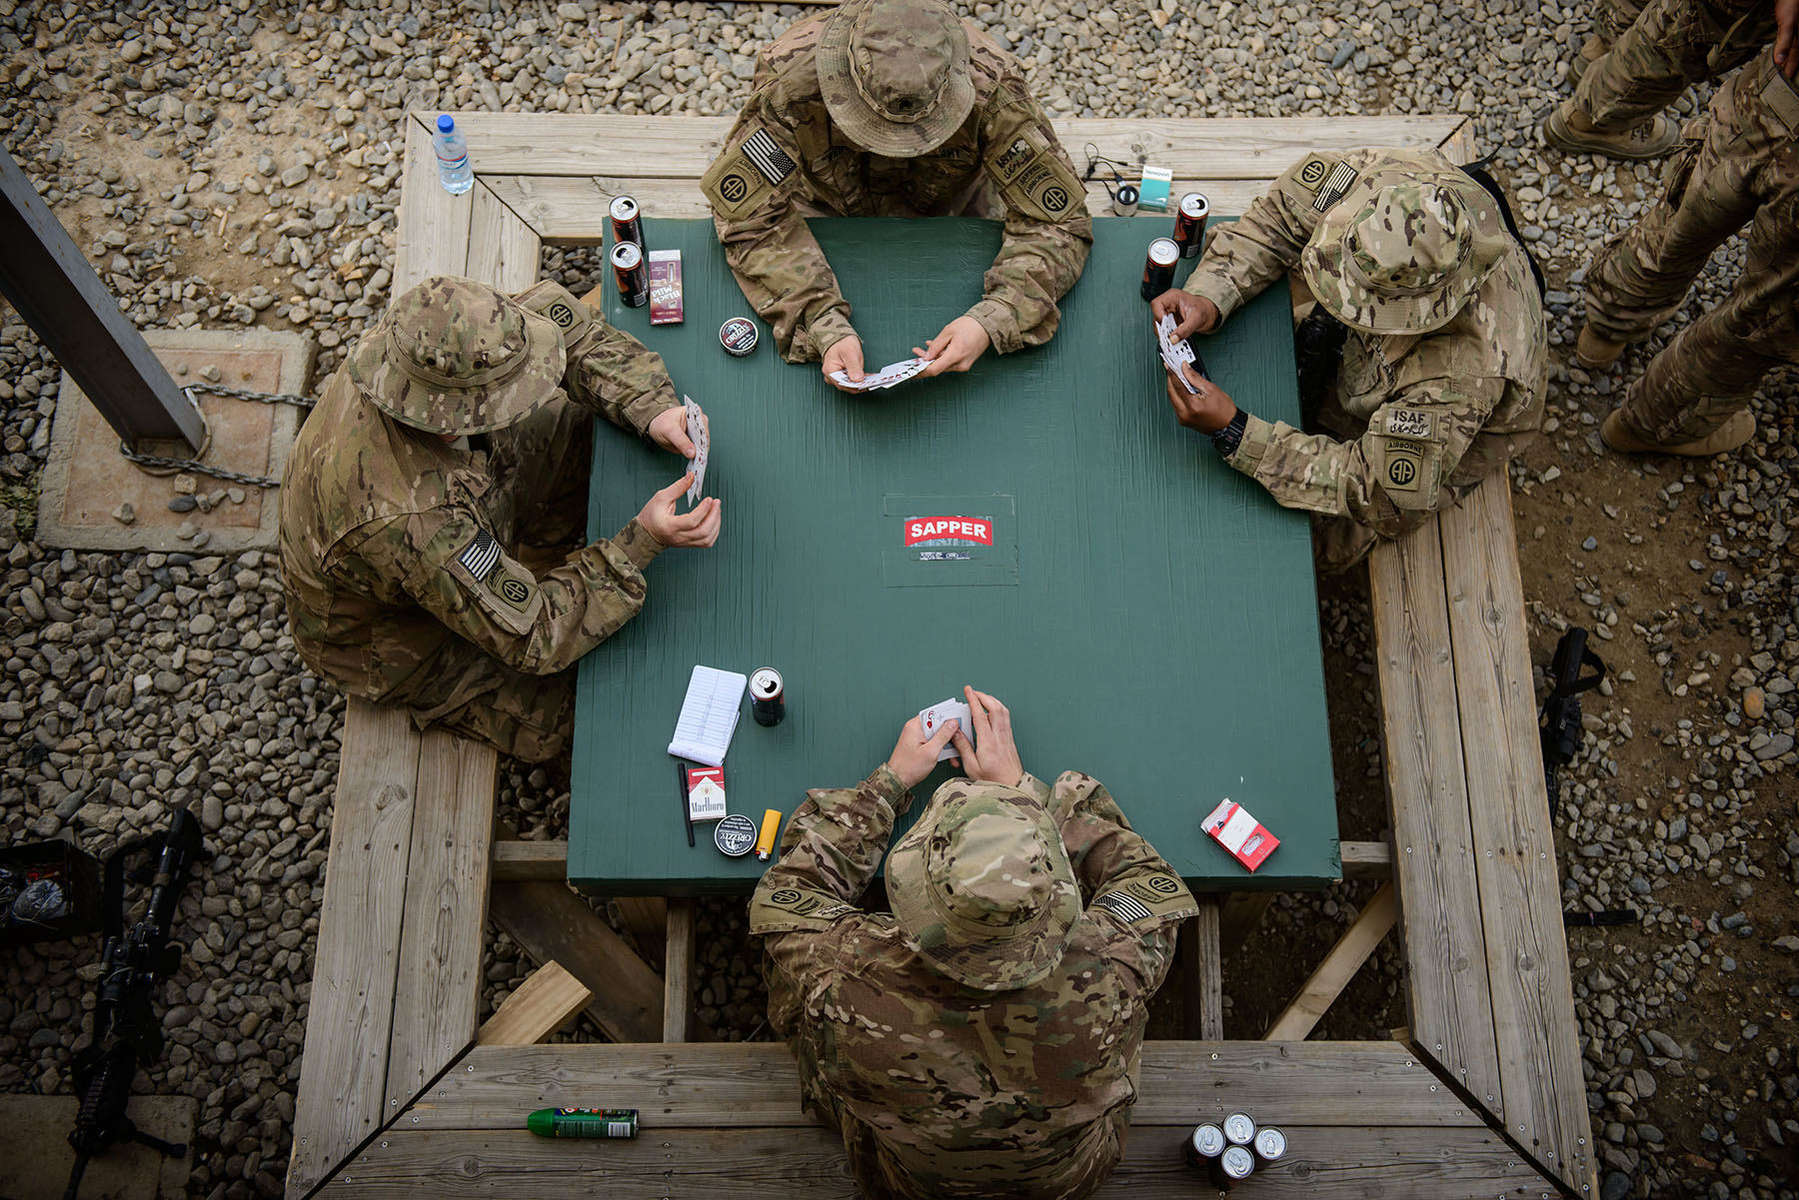 Second Place | Multiple PhotosAndrew Craft, The Fayetteville ObserverParatroopers, from the 2nd Battalion, 504th Parachute Infantry Regiment, play a game of cards Wednesday, April 16, 2014, outside their barracks on Bagram Airfield. Unlike other units, their mission doesn't involve a partnership with Afghan troops. They don't train, advise or assist. Instead, they stand on alert, ready to lend a hand to coalition or Afghan troops under attack. But since arriving in late February, the deployment has been quiet. Especially compared with the 2012 deployment to Ghazni province, where paratroopers lived in sparse conditions while undertaking the last major clearing operation of the war by U.S. troops.